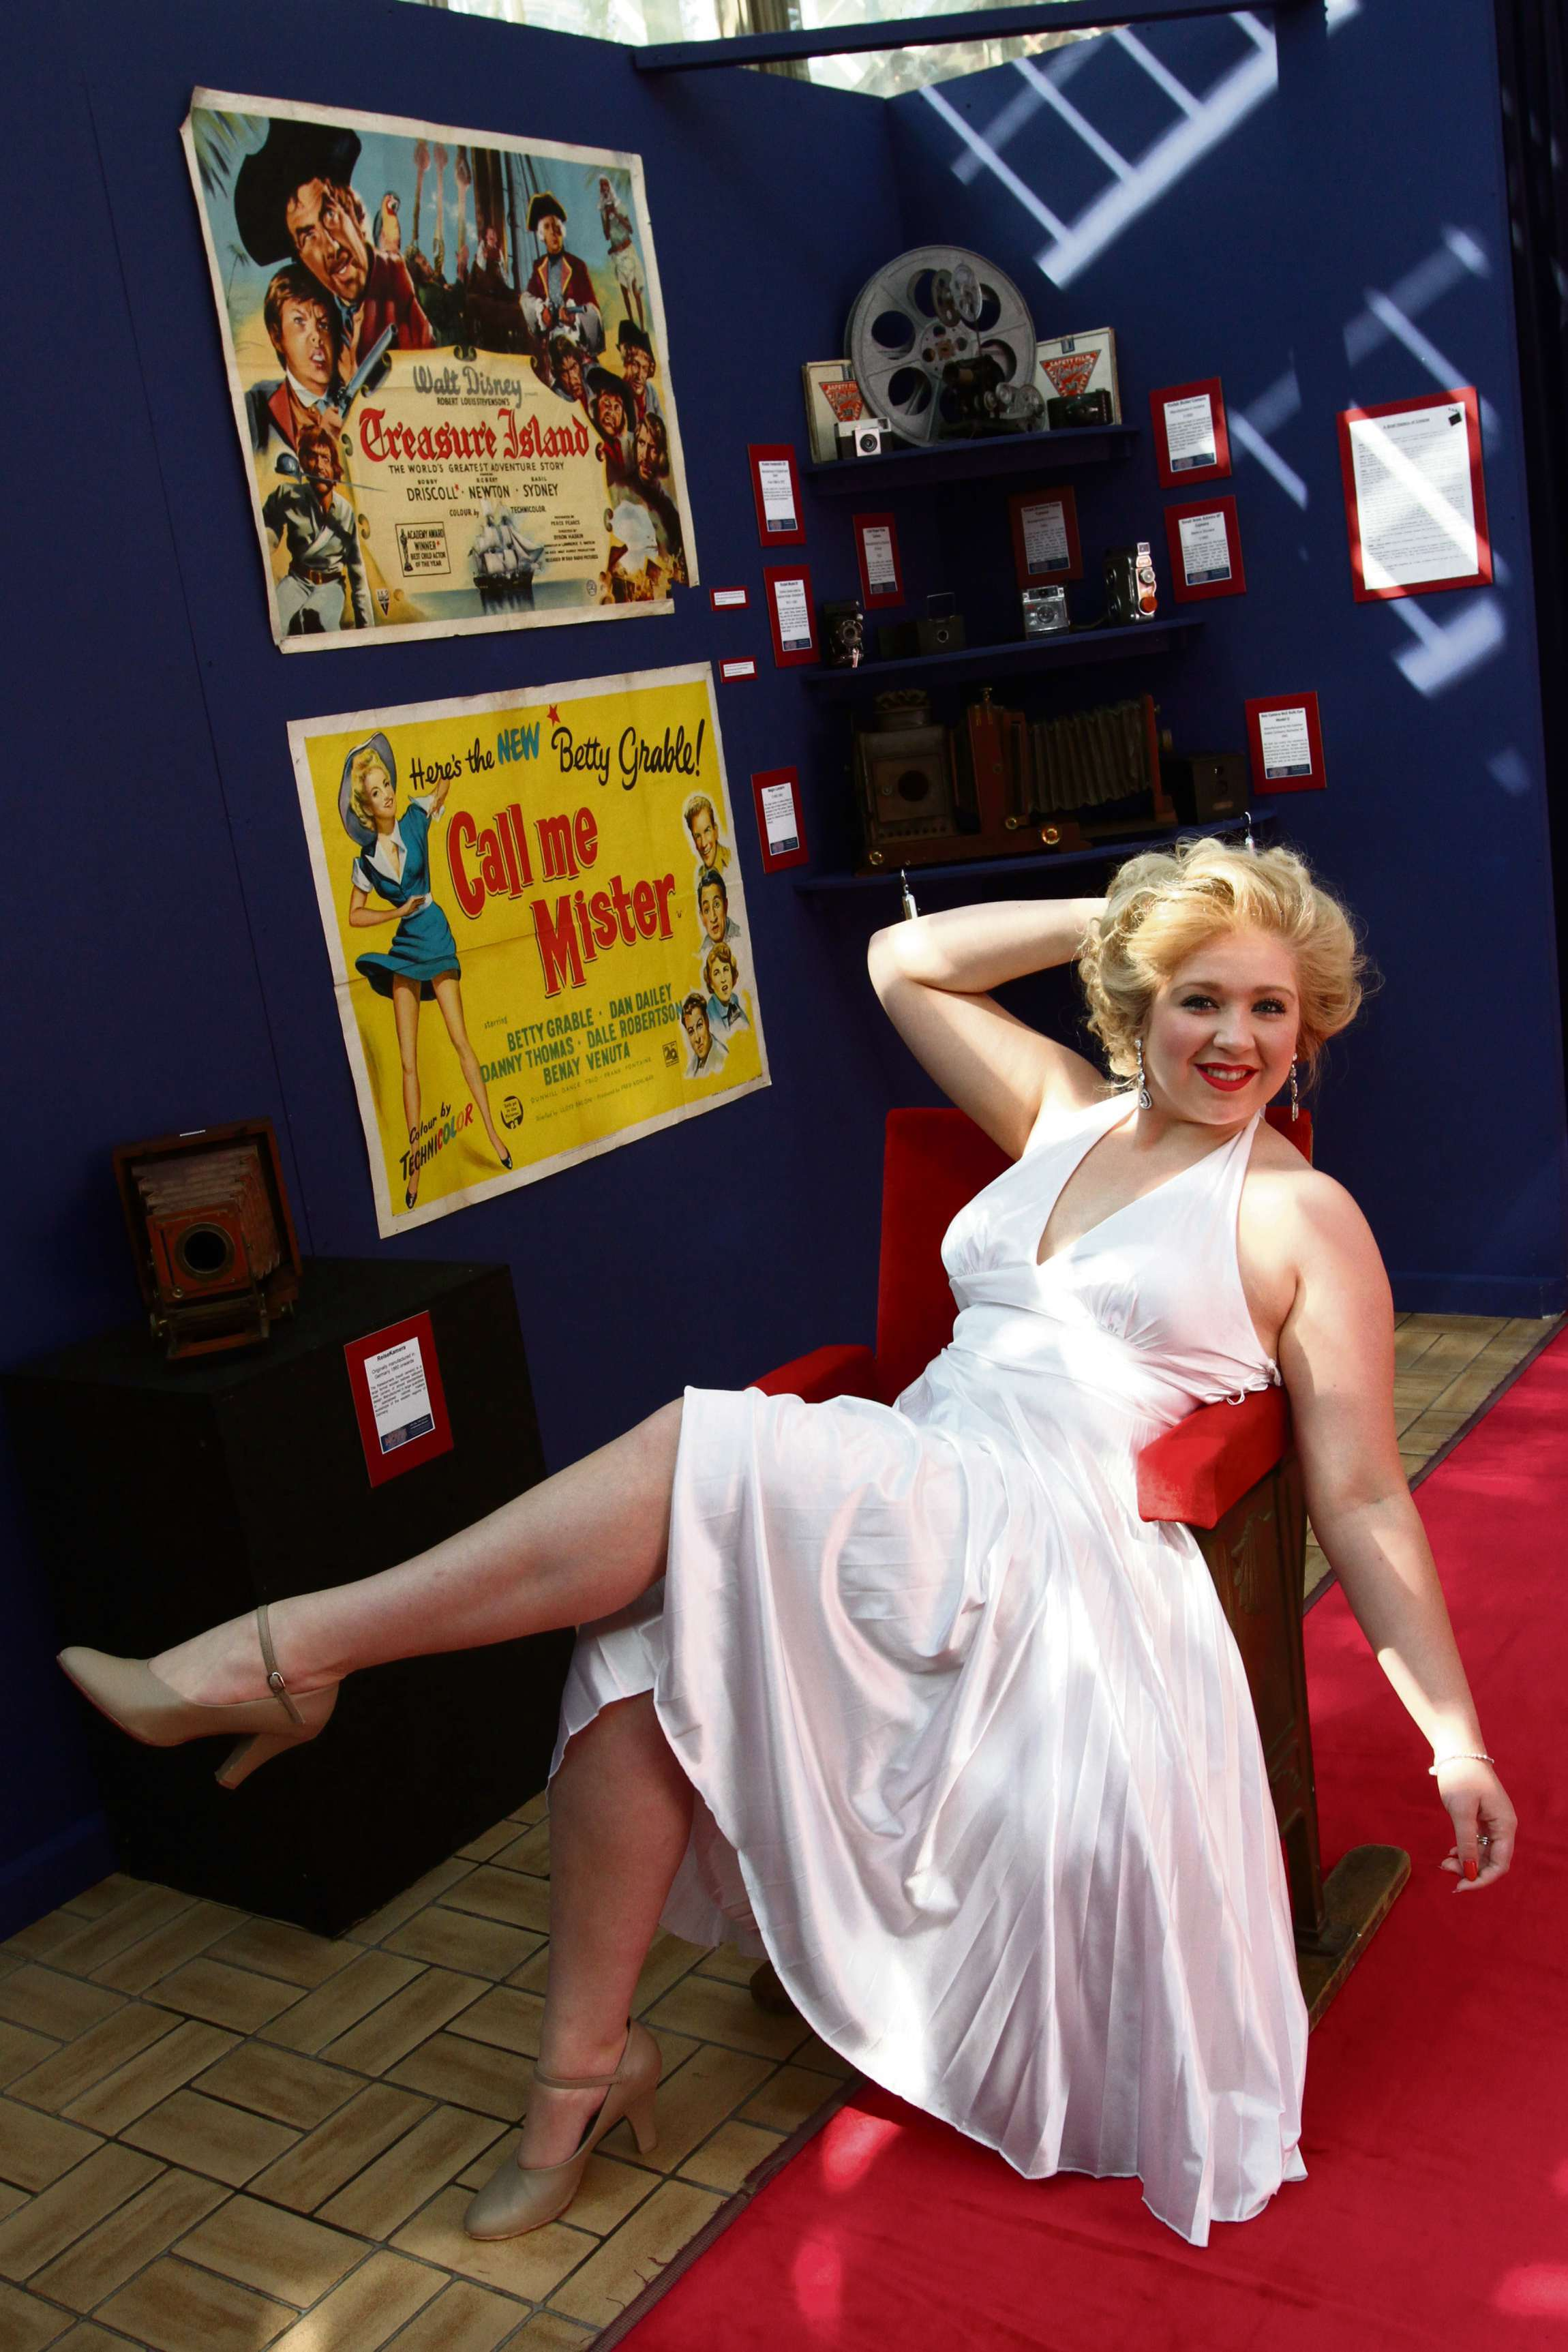 Marilyn adds touch of glamour to movie exhibition